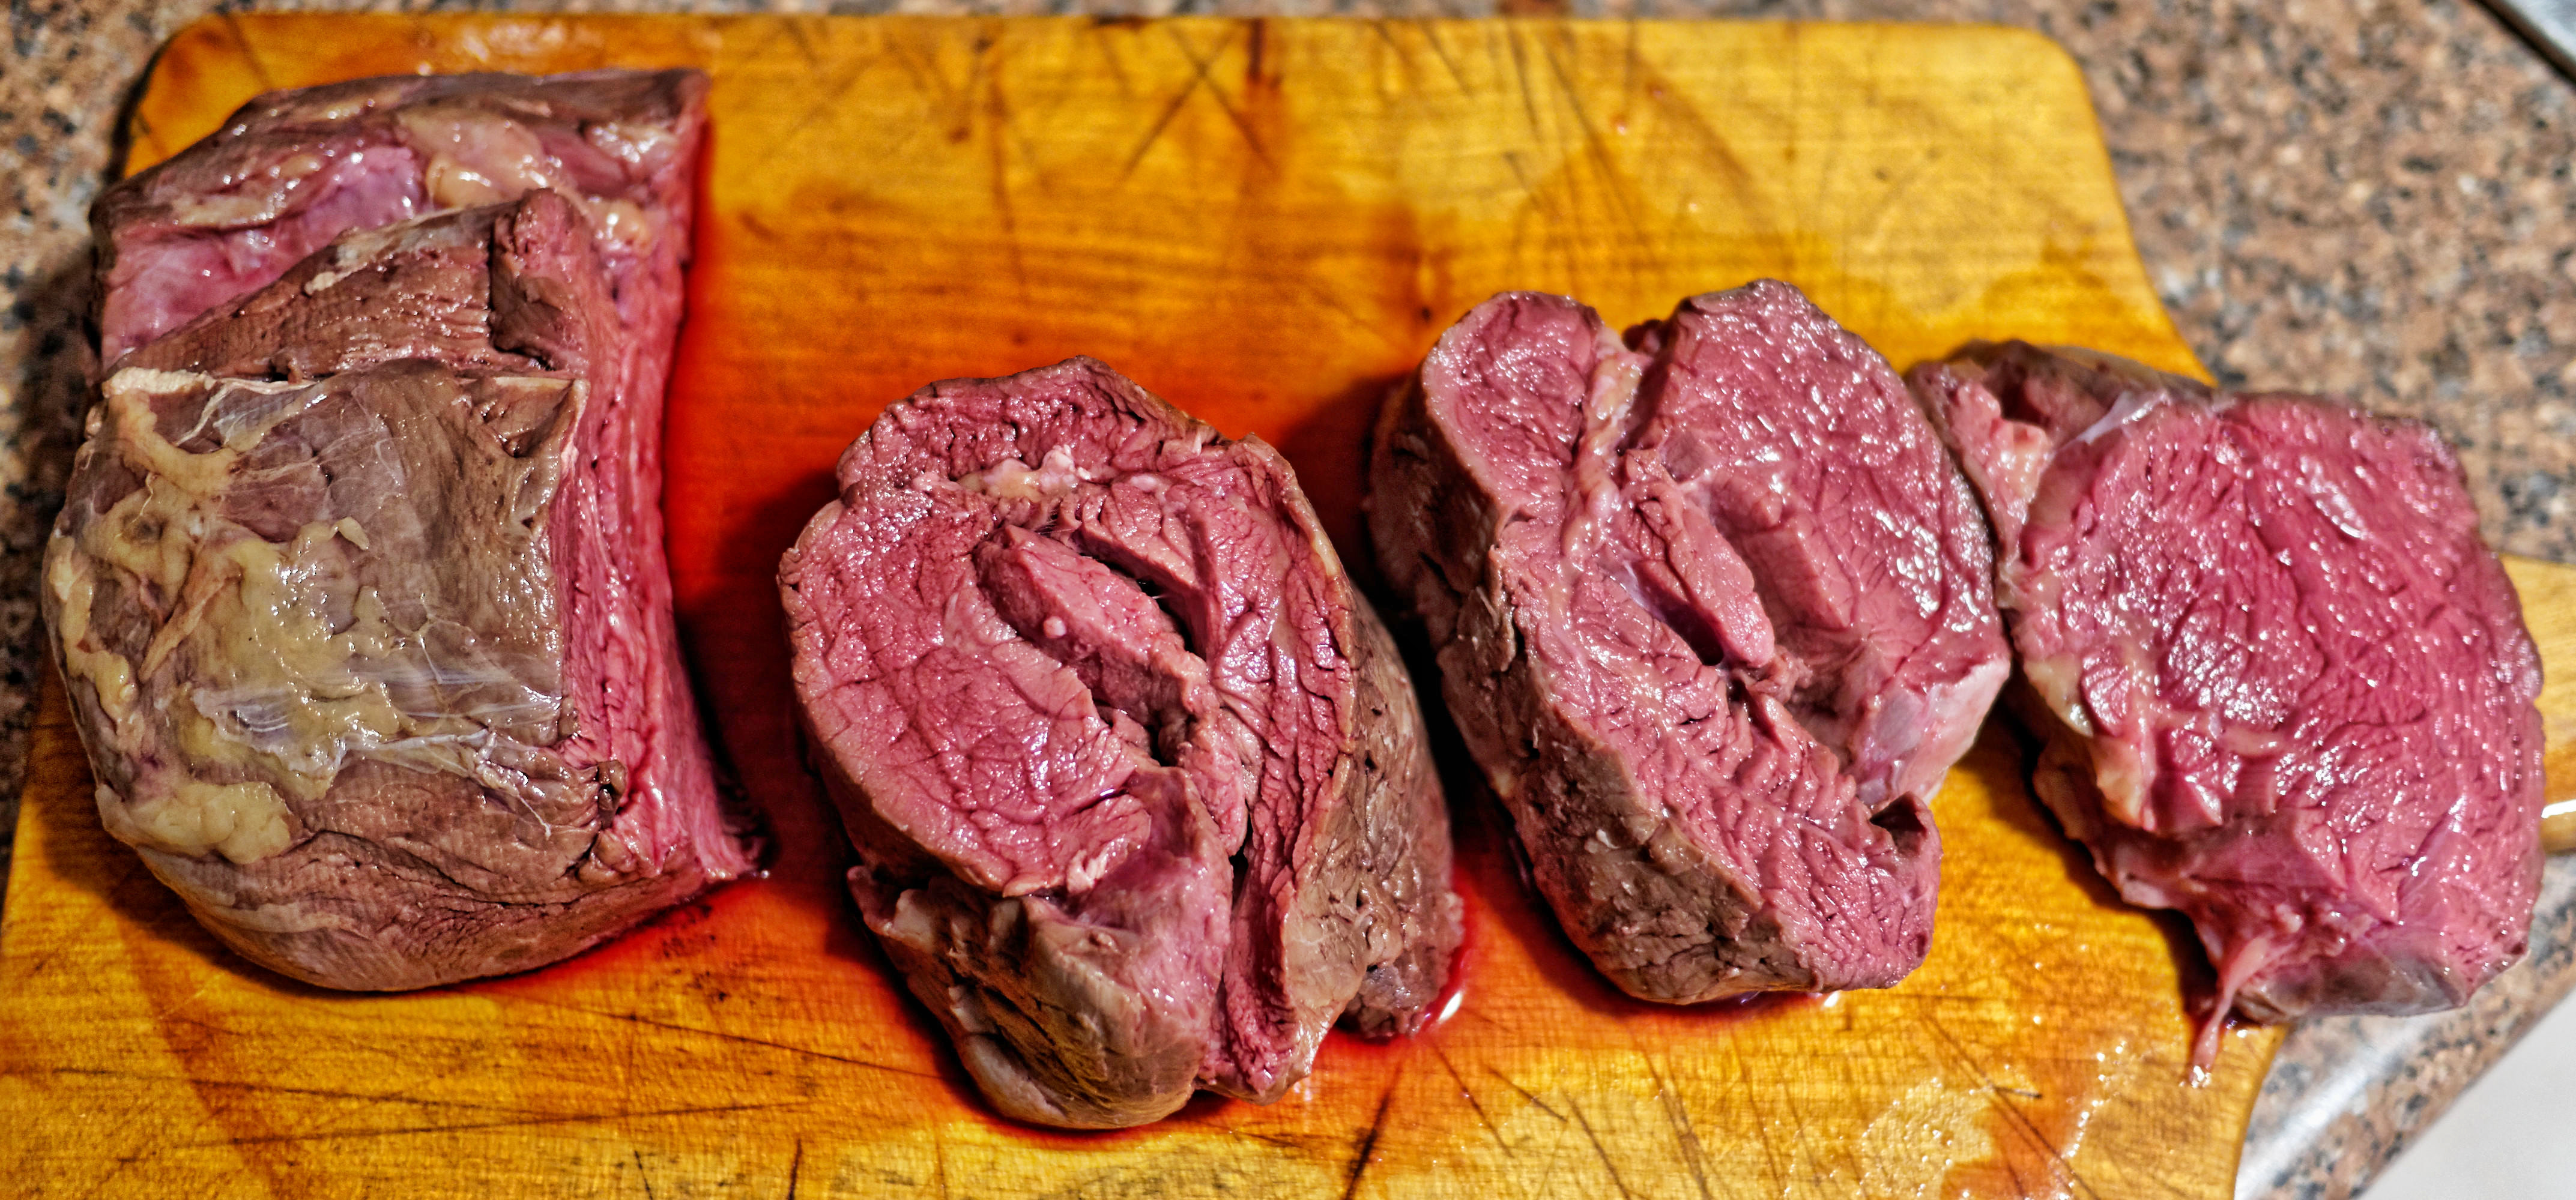 Aldi-filet-2.jpeg